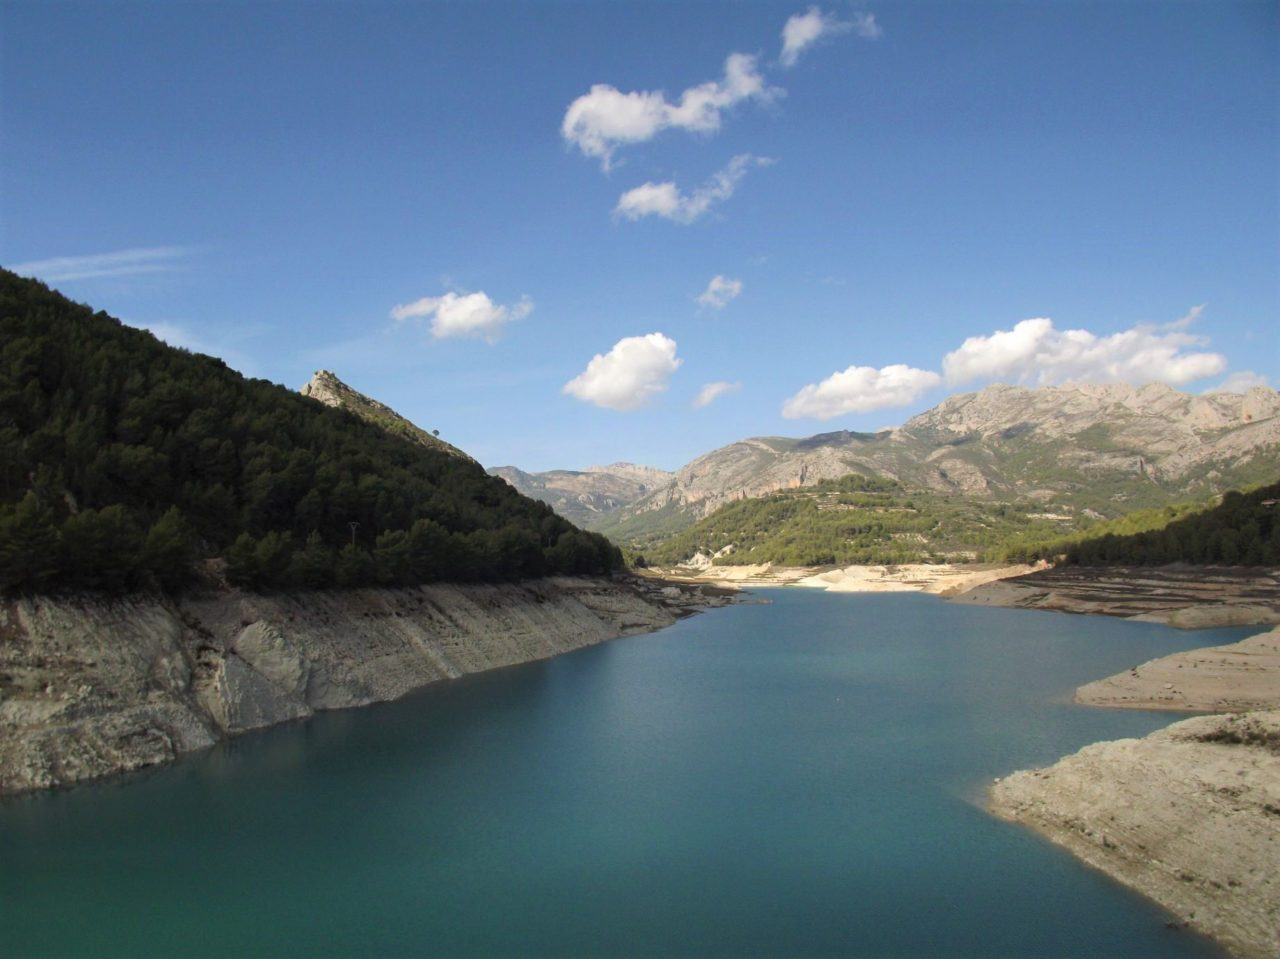 The view from the dam in Guadalest